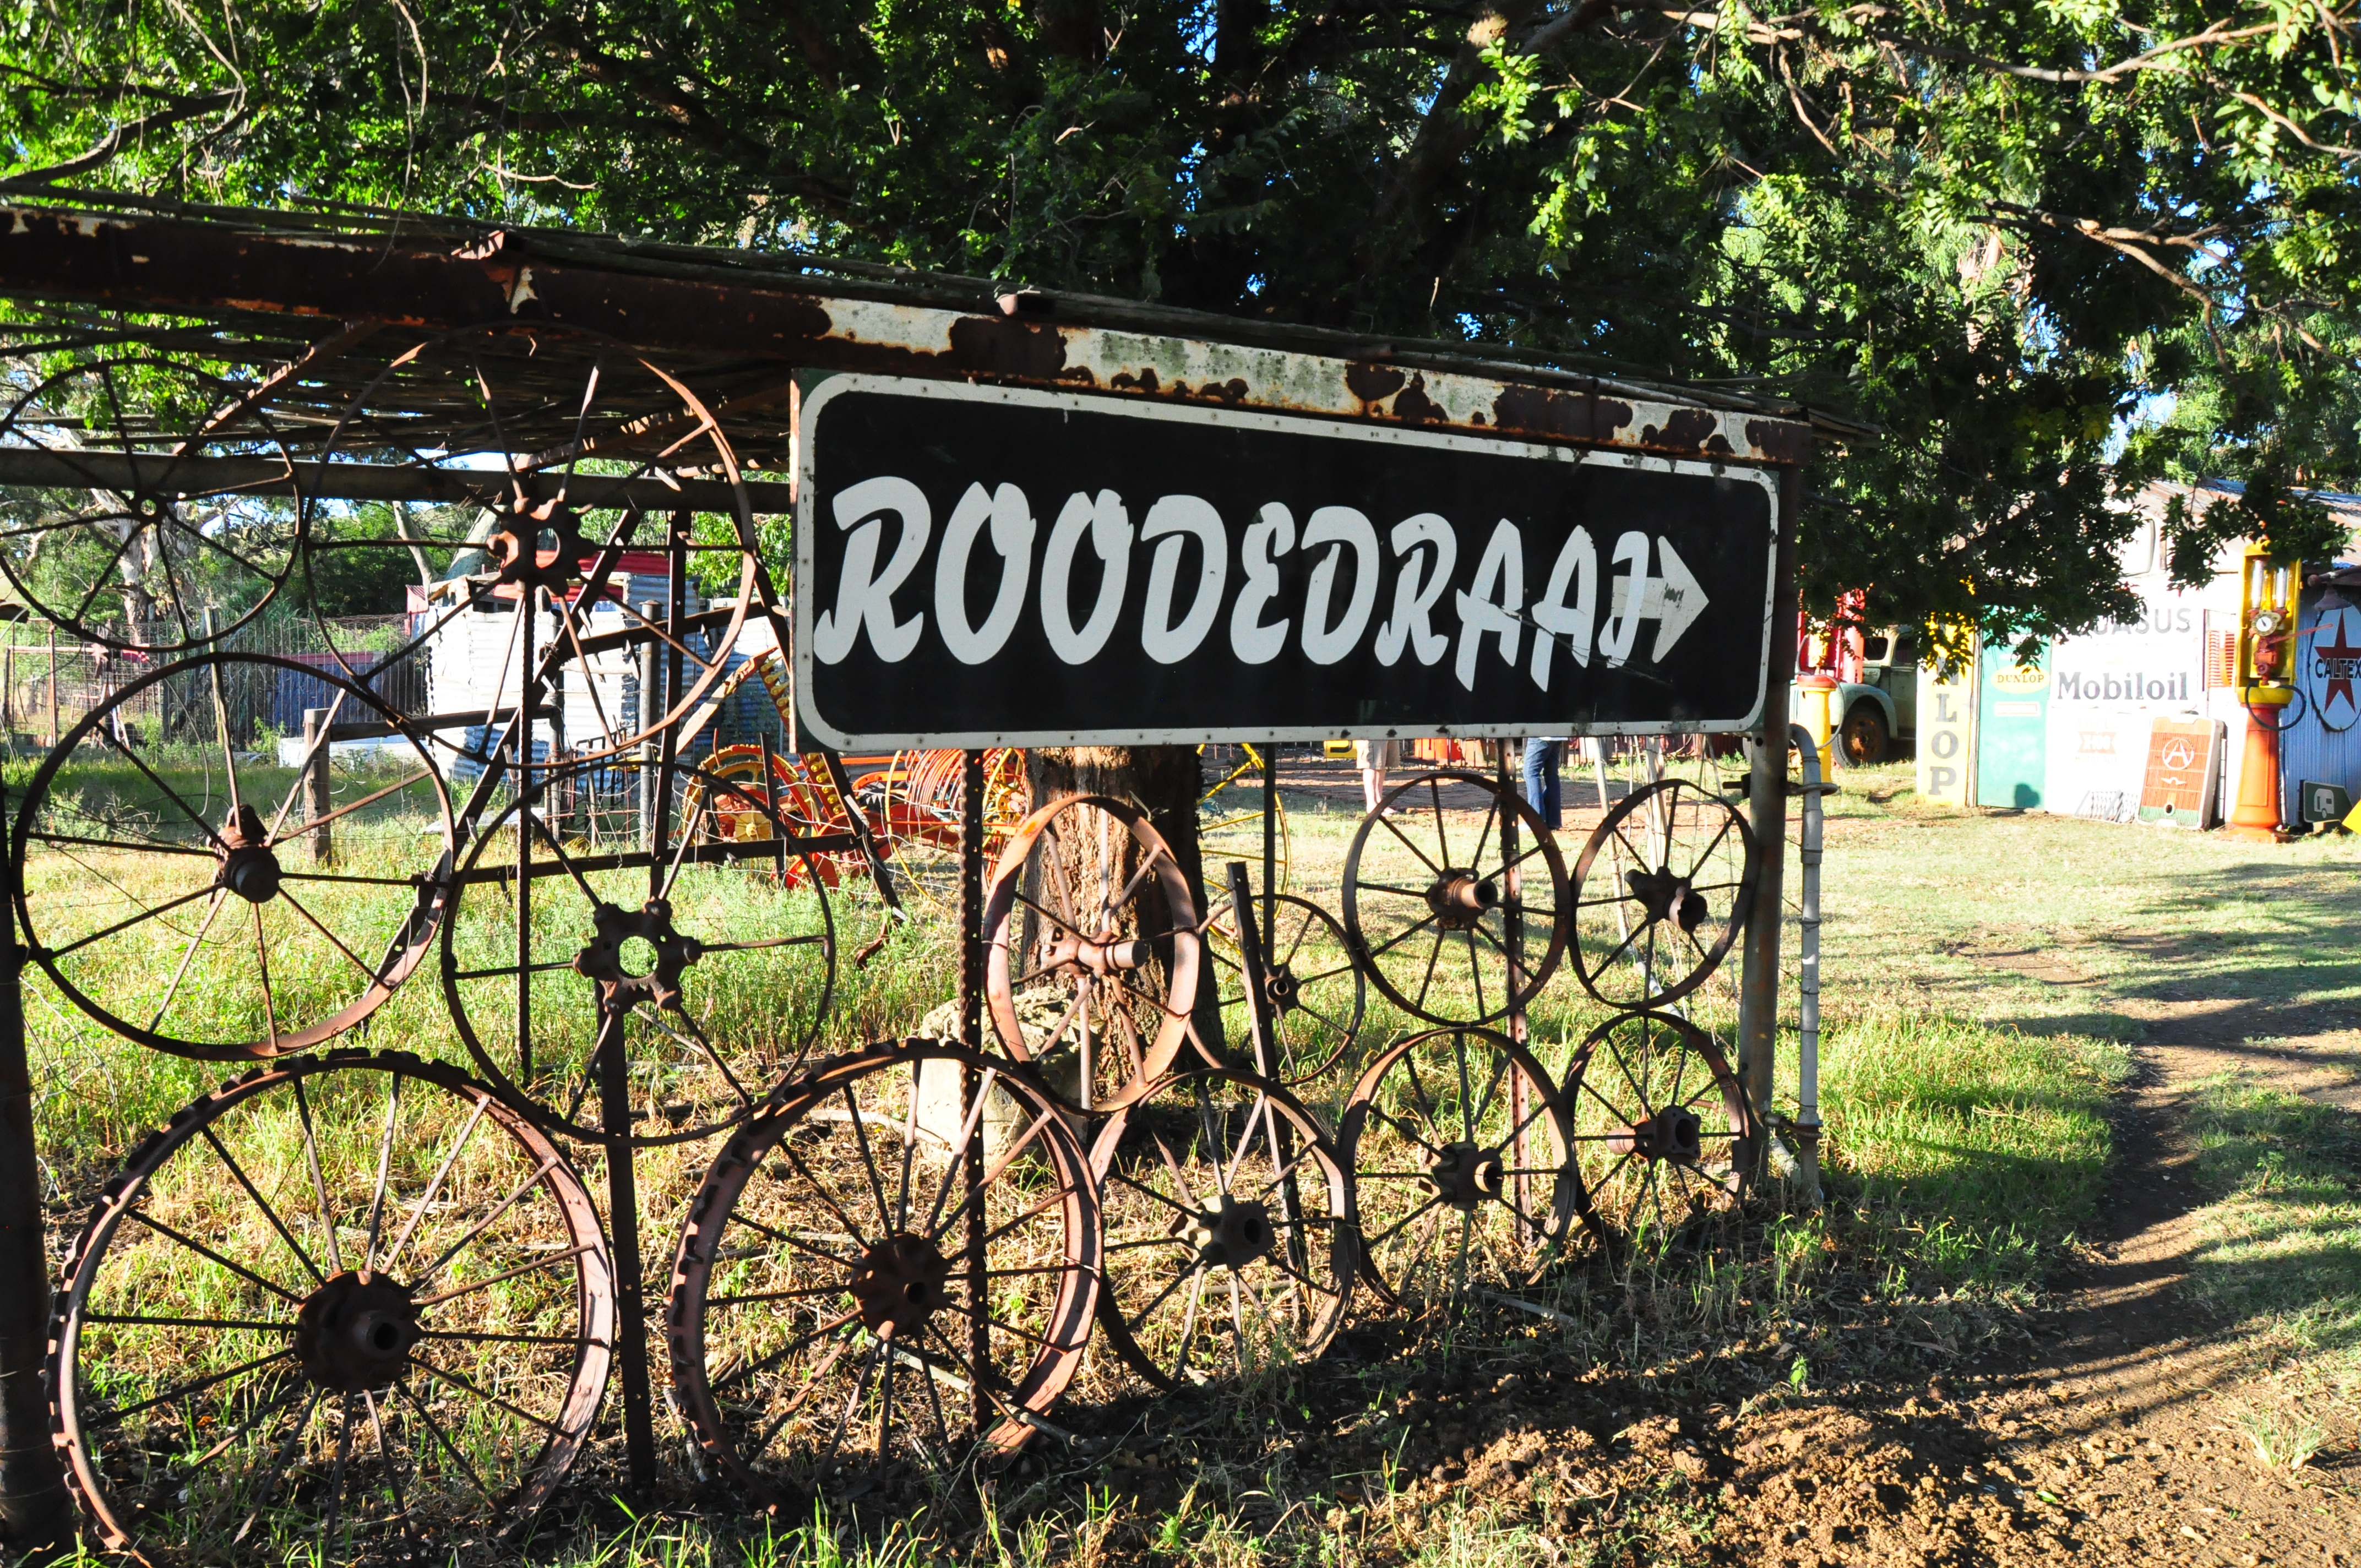 Roodedraai Anglo-Boer War Museum (By appointment)